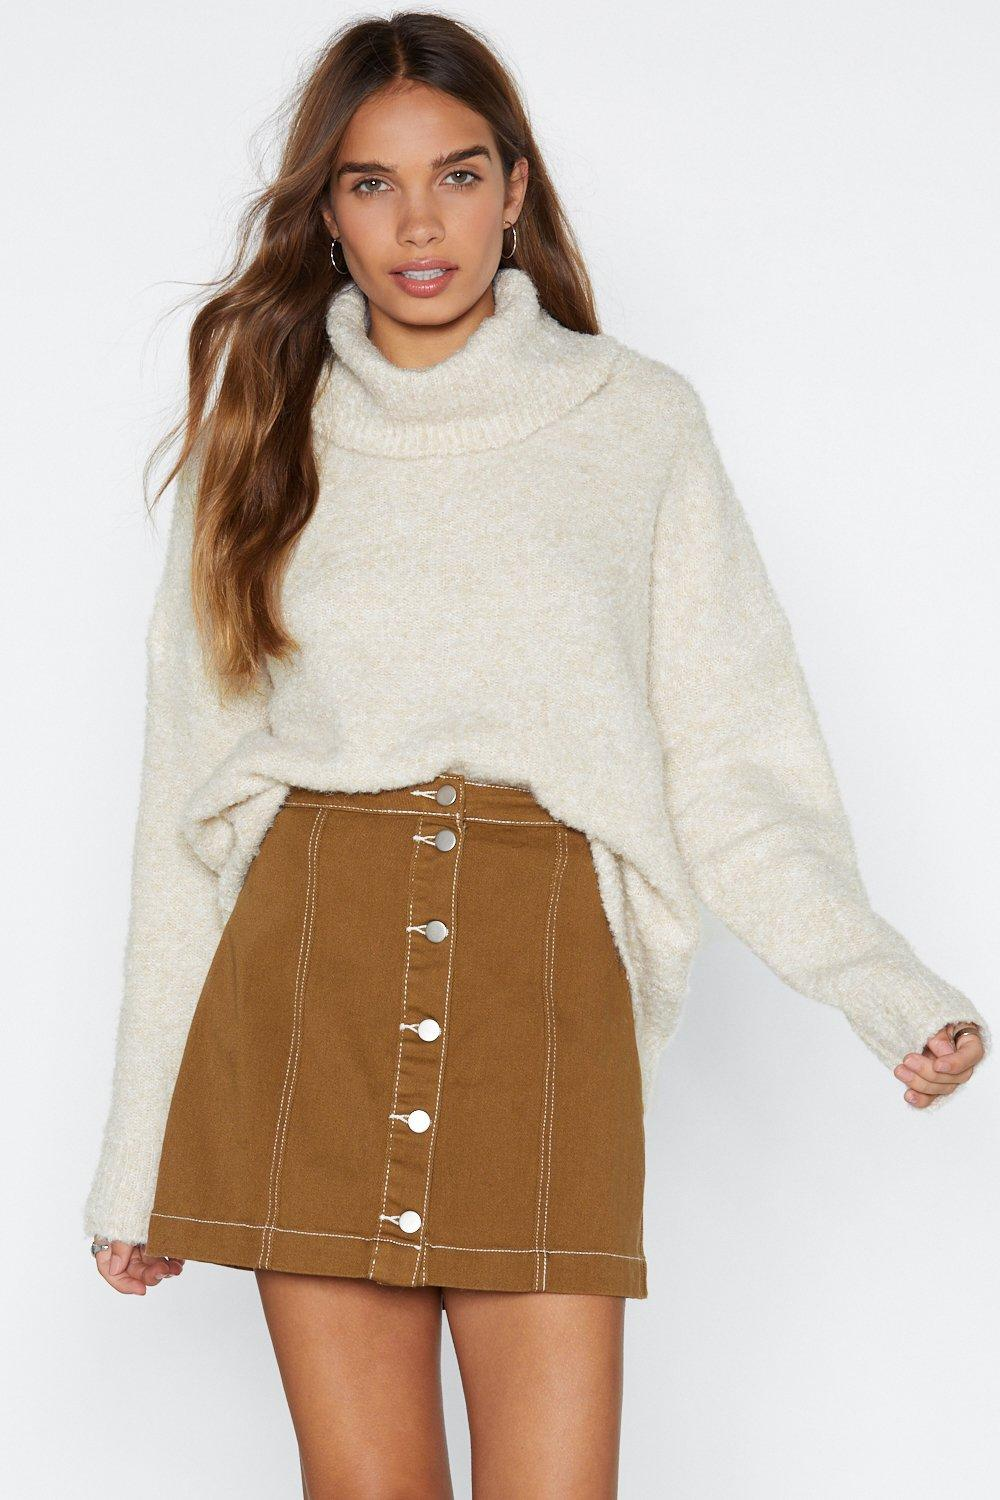 38d5205a897 Womens Cream Oversize Up the Competition Turtleneck Sweater